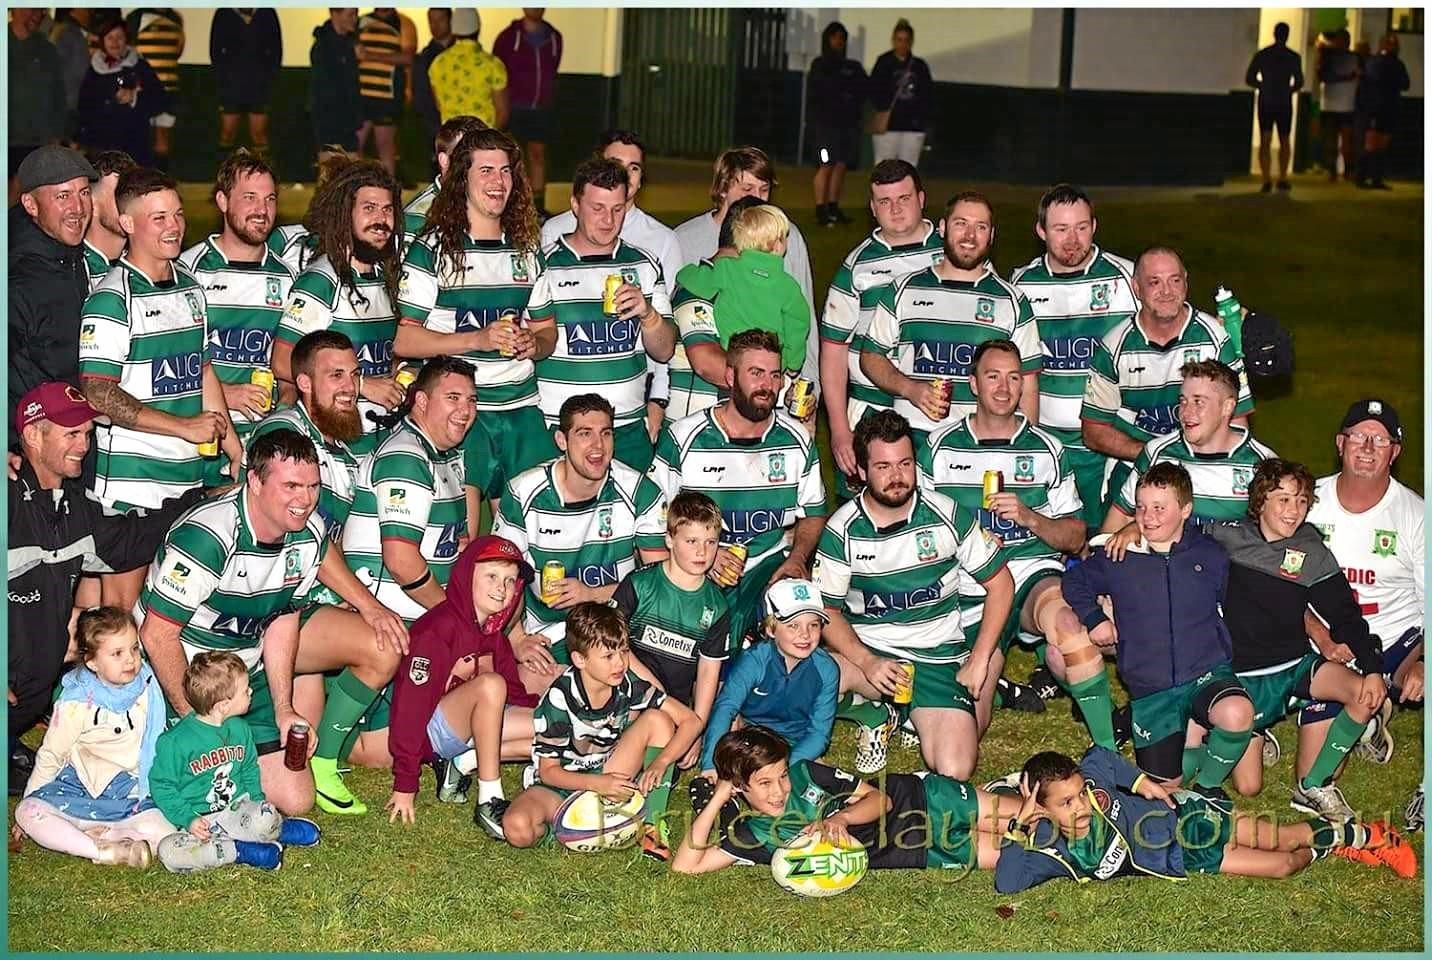 The Ipswich Rangers Wyatt Cup team that has made a late charge towards the grand final this season. Photo: Bruce Clayton